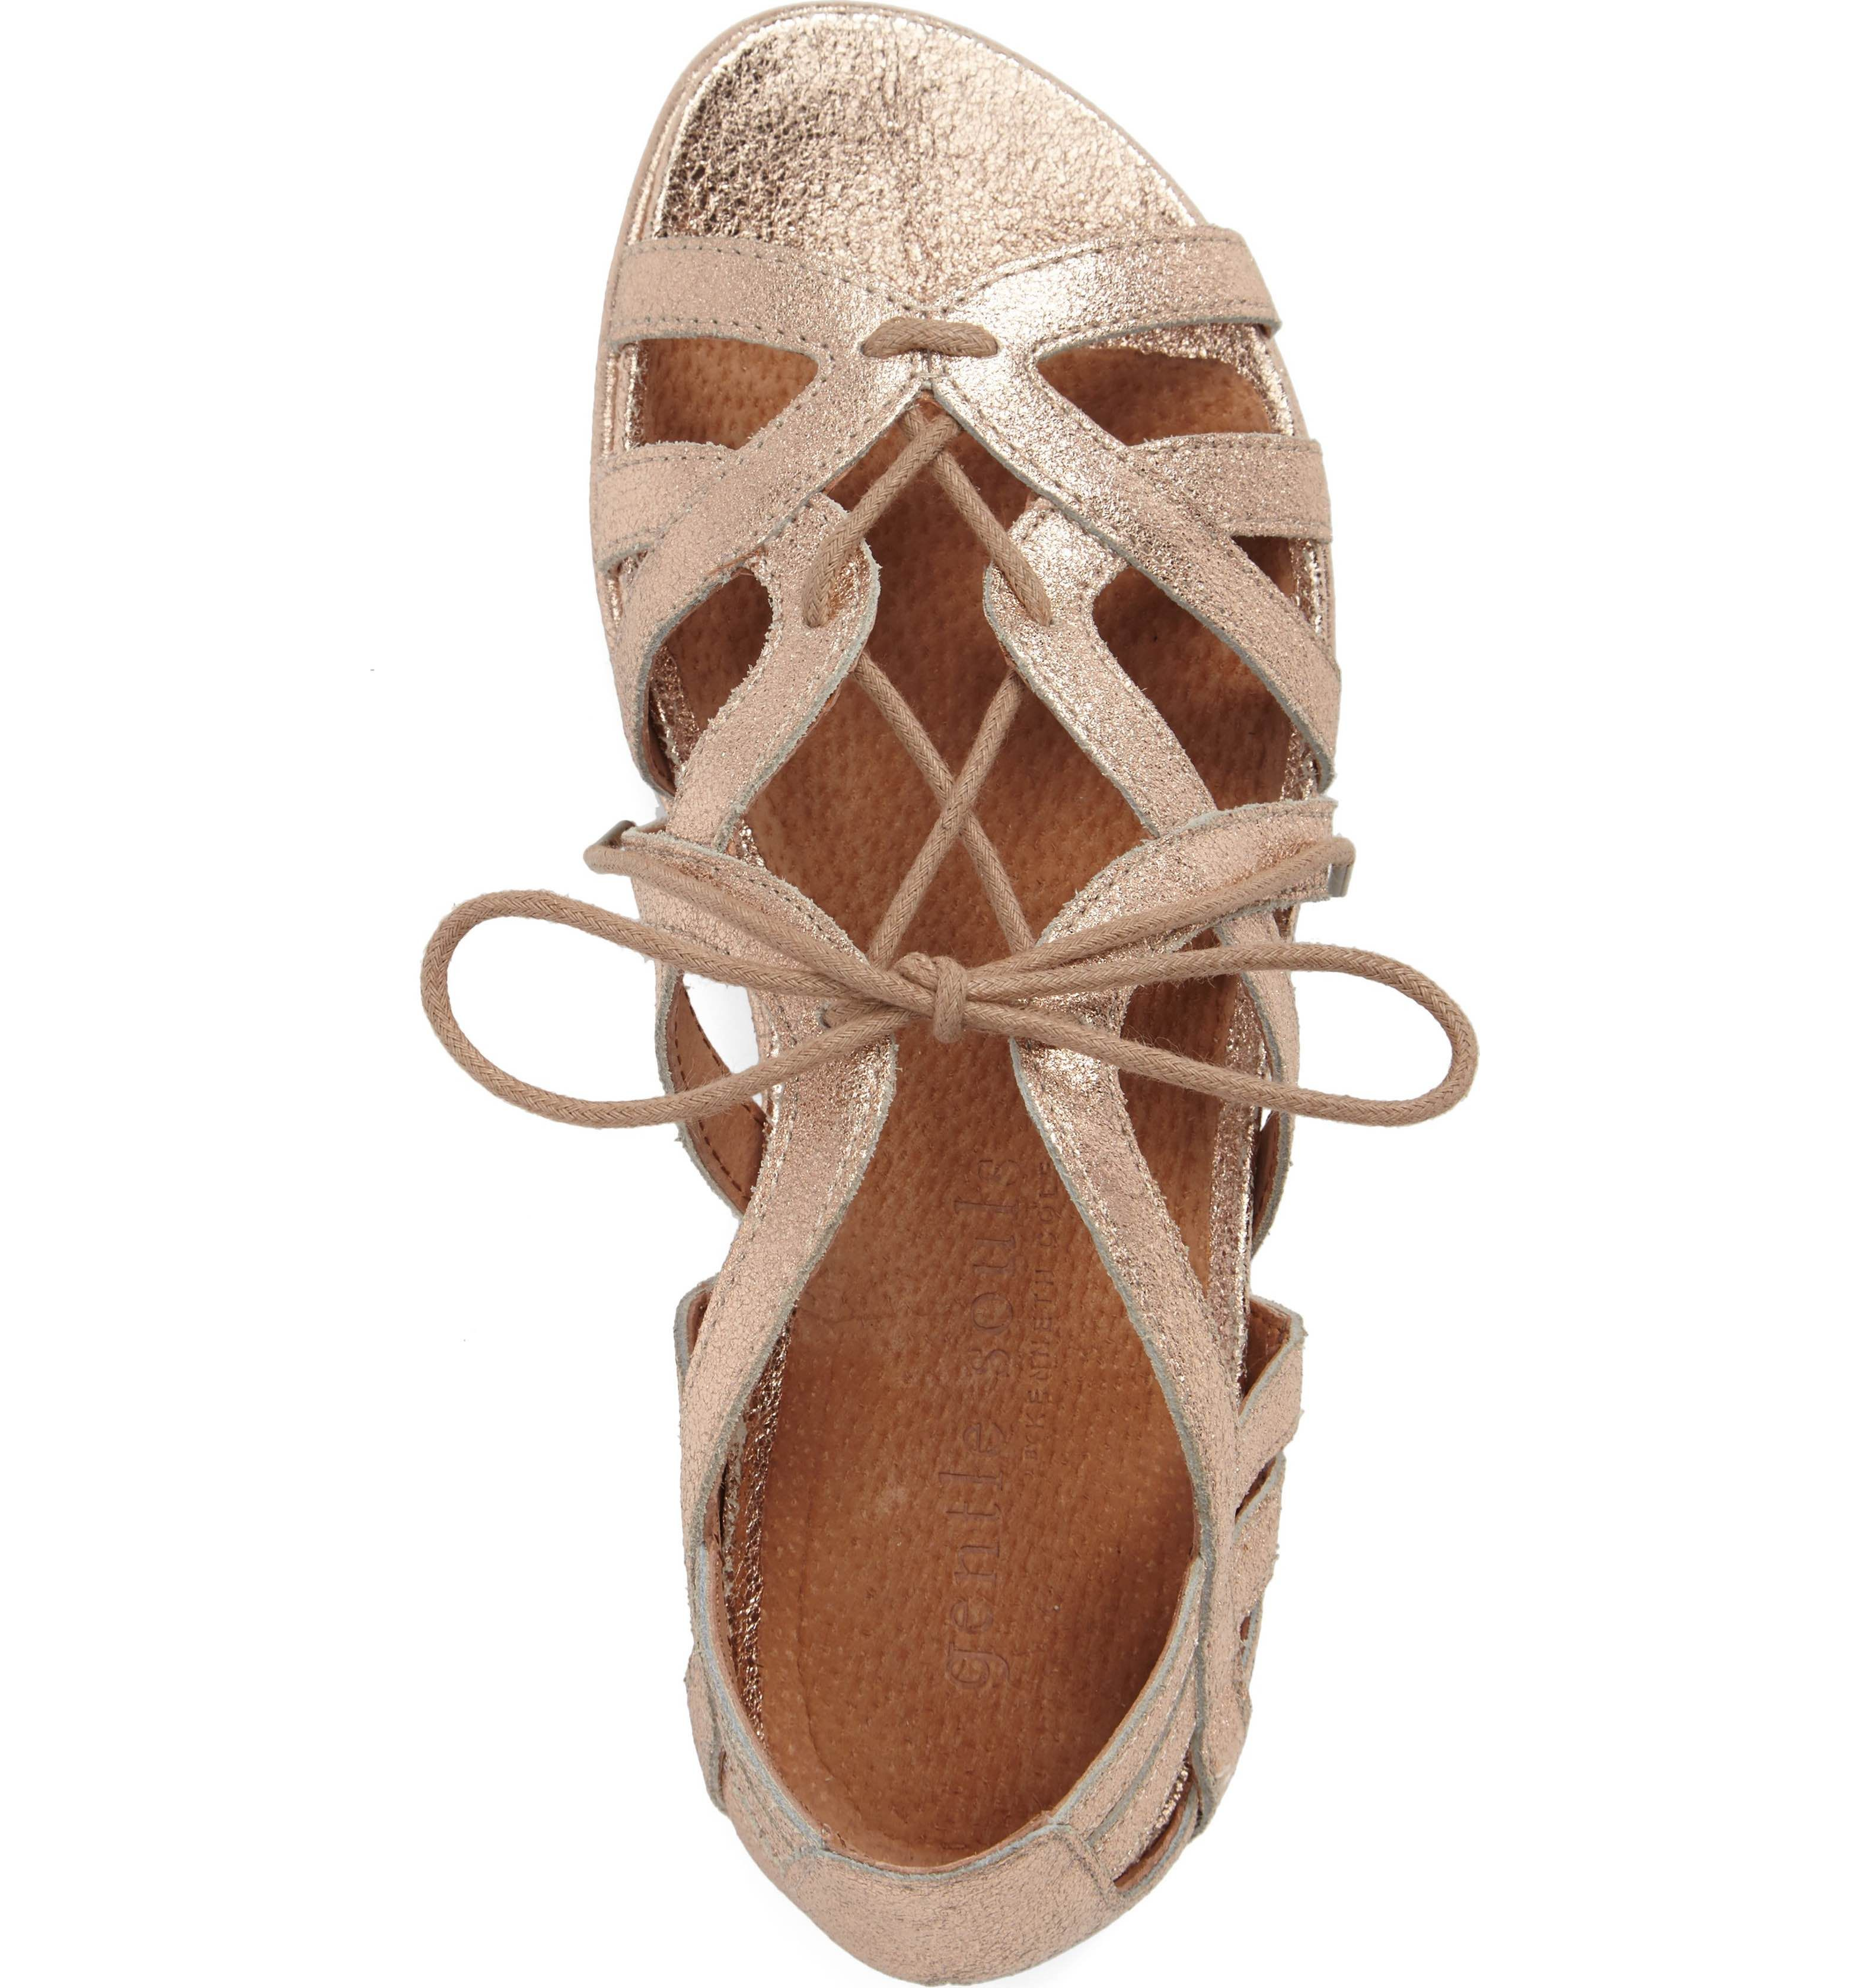 c844a6375fa Main Image - Gentle Souls  Orly  Lace-Up Sandal (Women) (Nordstrom  Exclusive)